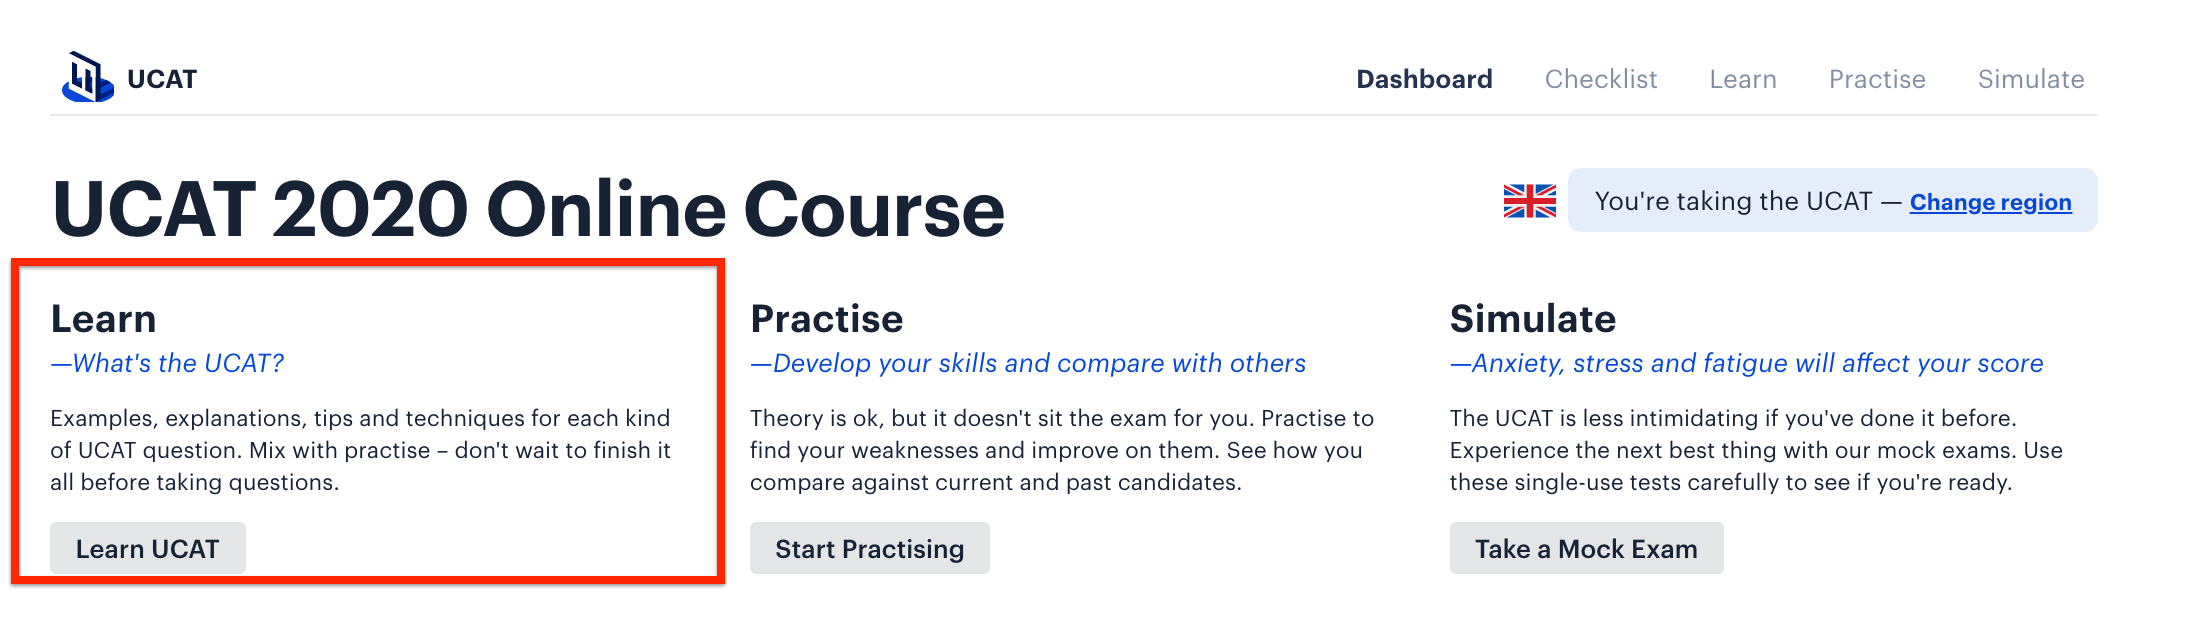 A screenshot of Medify's Online UCAT ANZ course, with a red box drawn around the 'Learn' section.